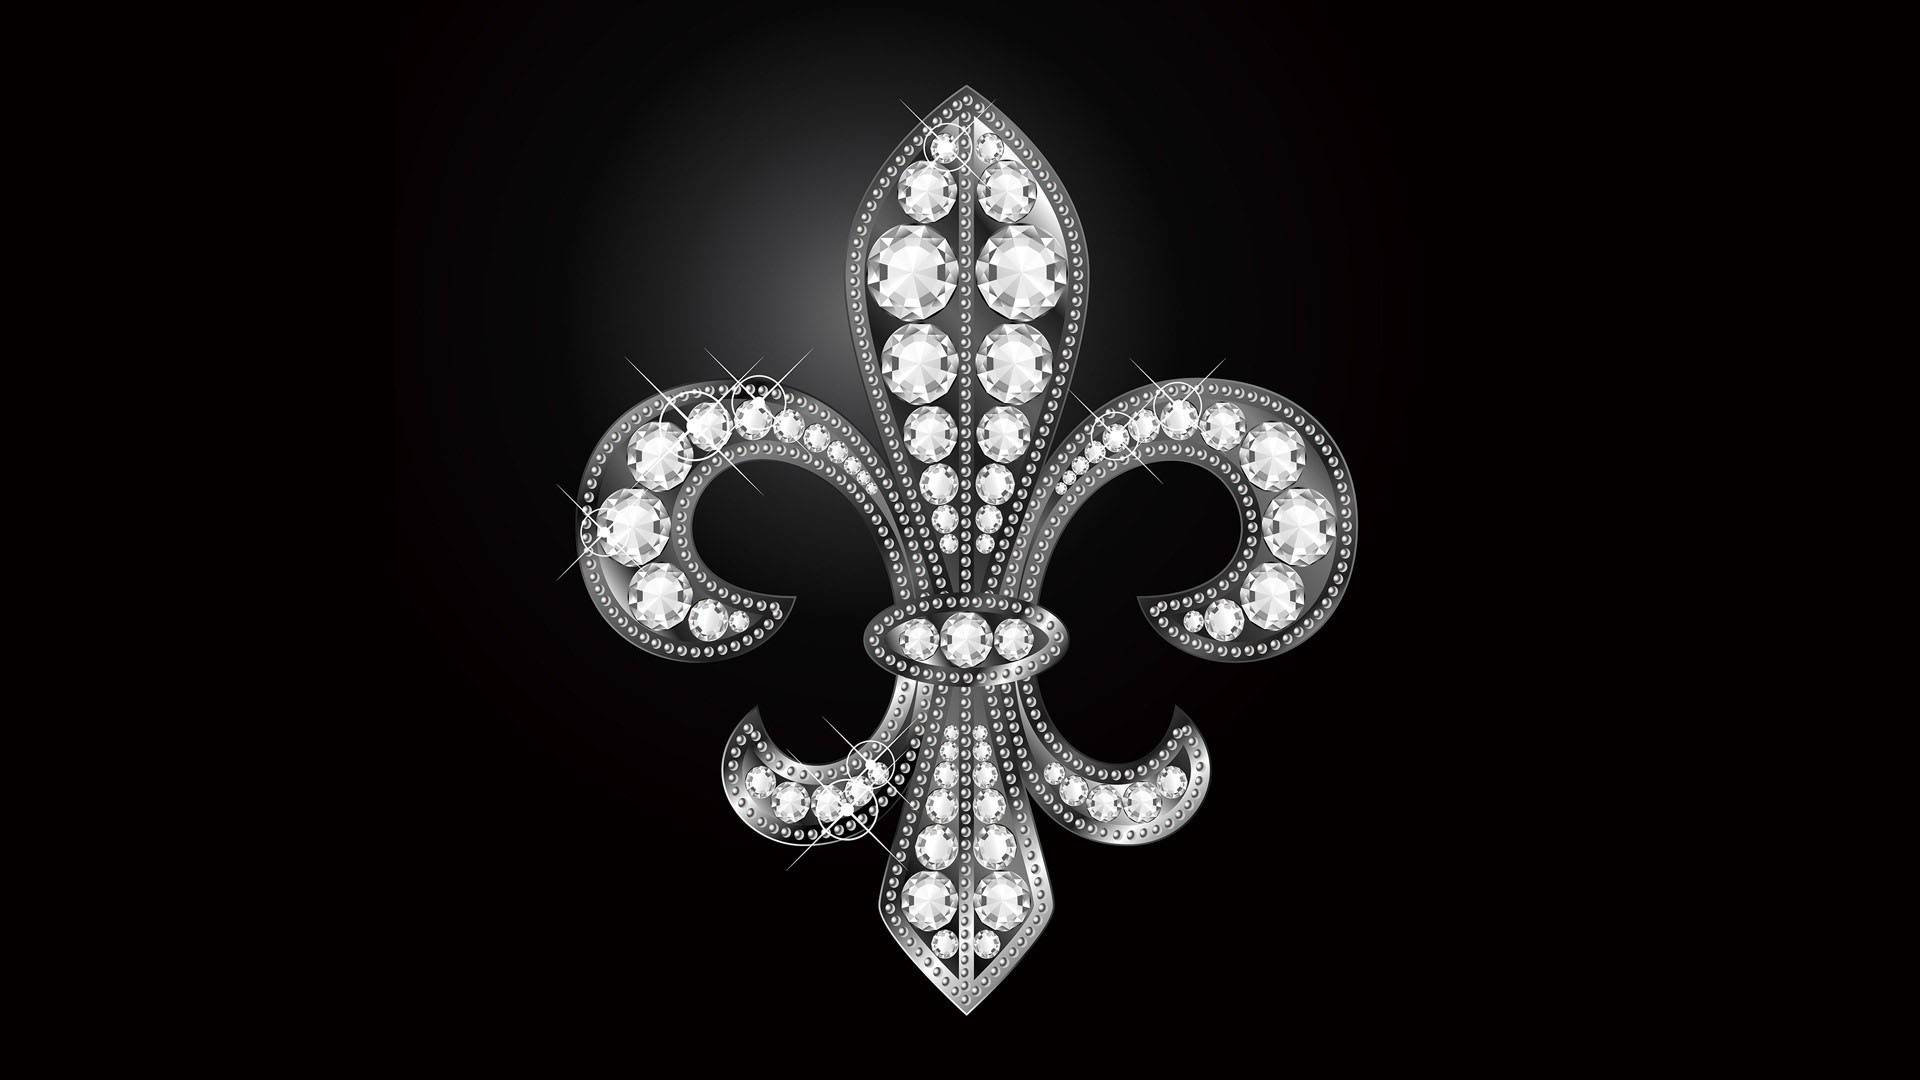 French Diamond Wallpaper High Resolution Jpeg 519